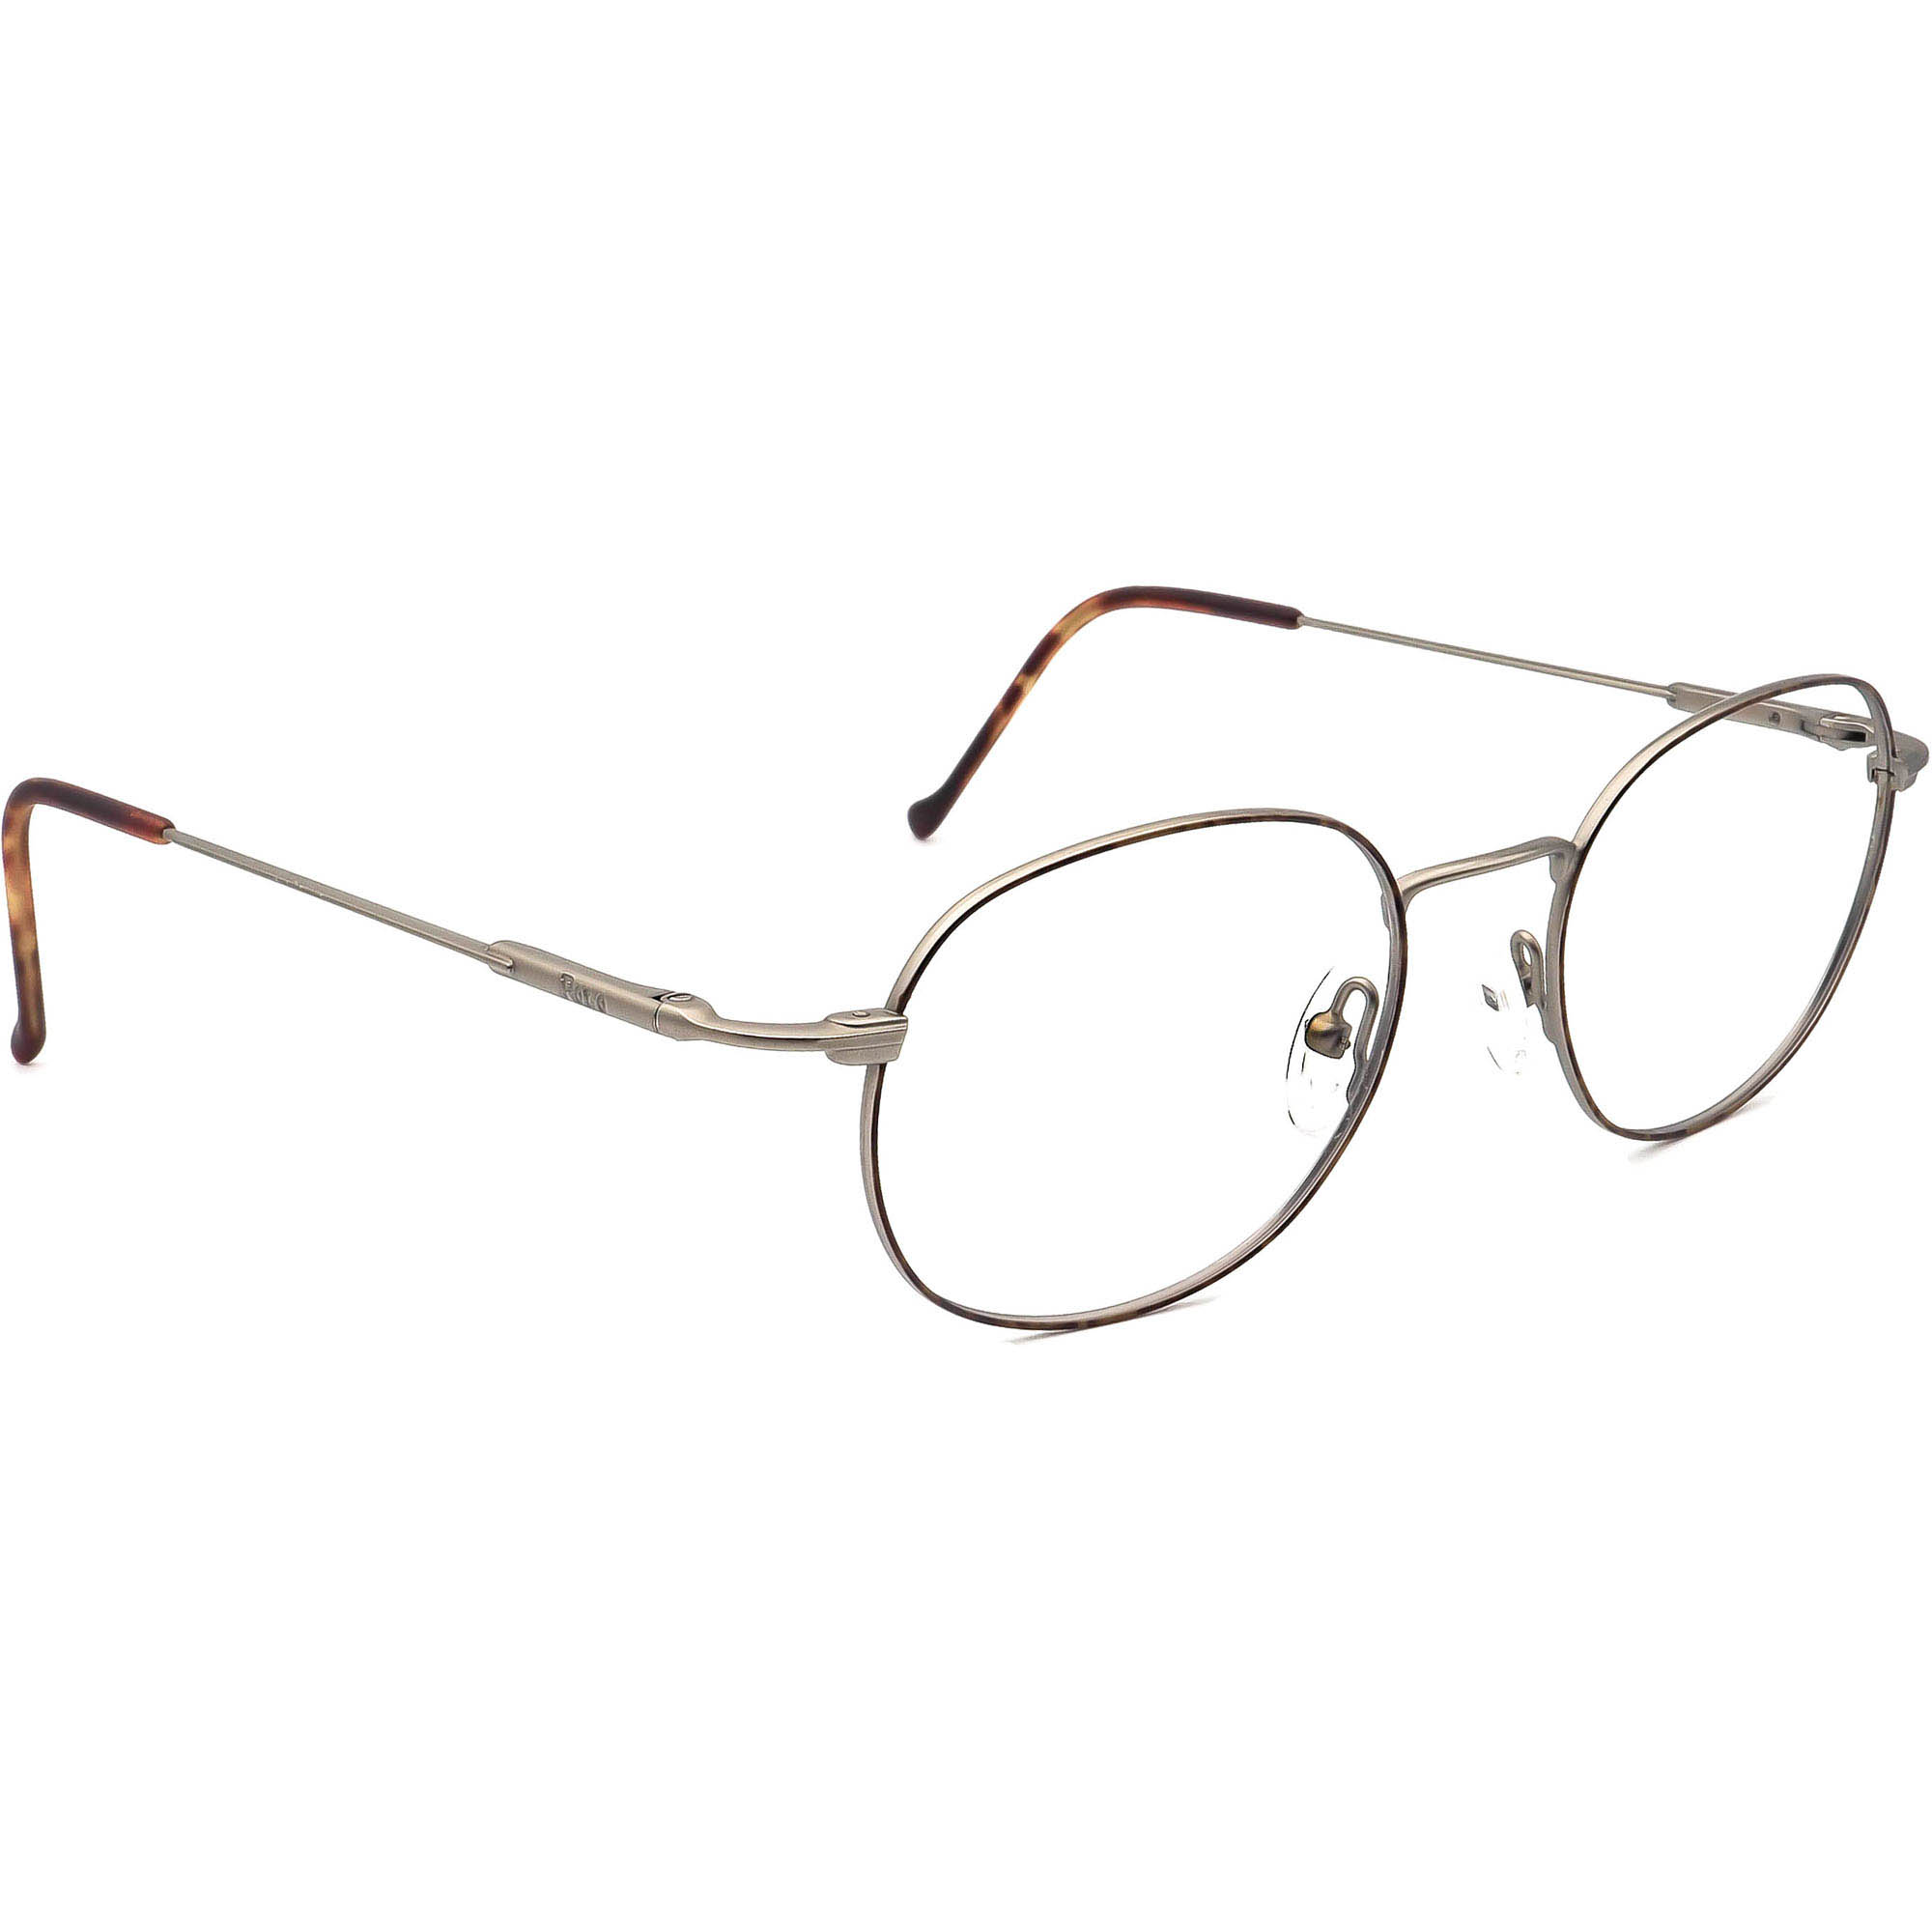 Ralph Lauren Polo 310 PC3  Eyeglasses